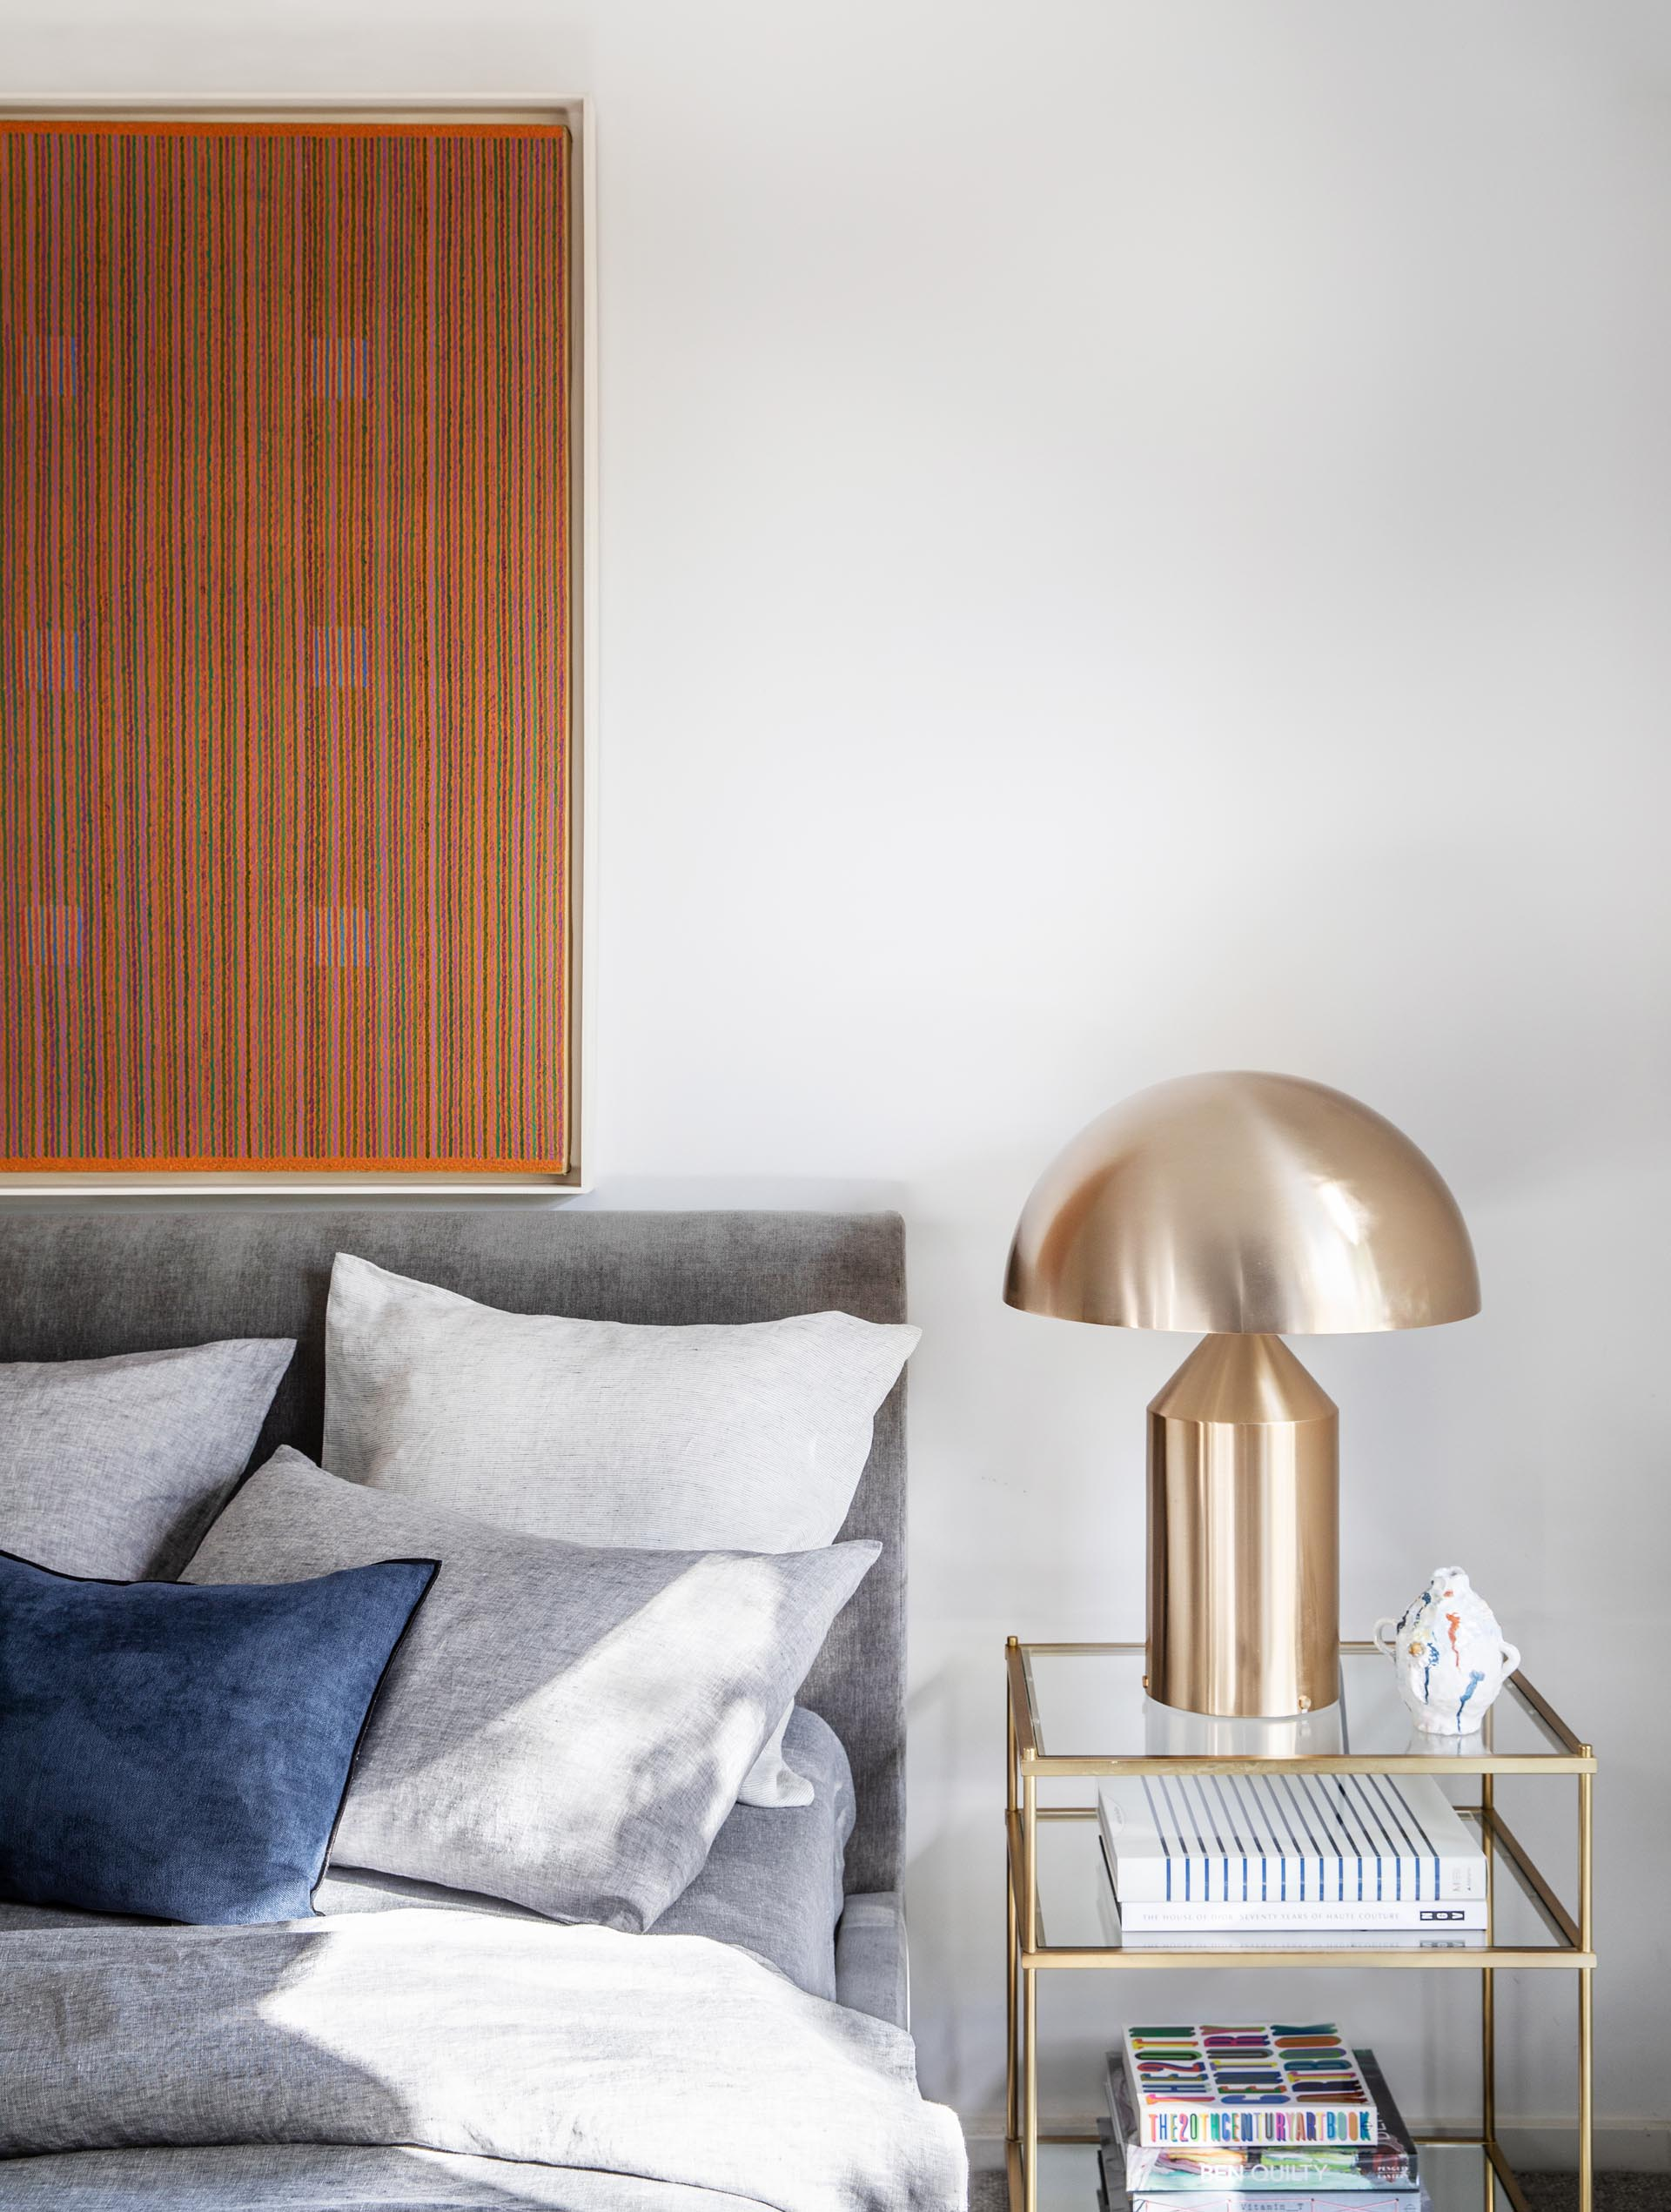 In this modern bedroom, an art piece and gray bedding adds color to the room, while the metallic accents add a touch of glamour.